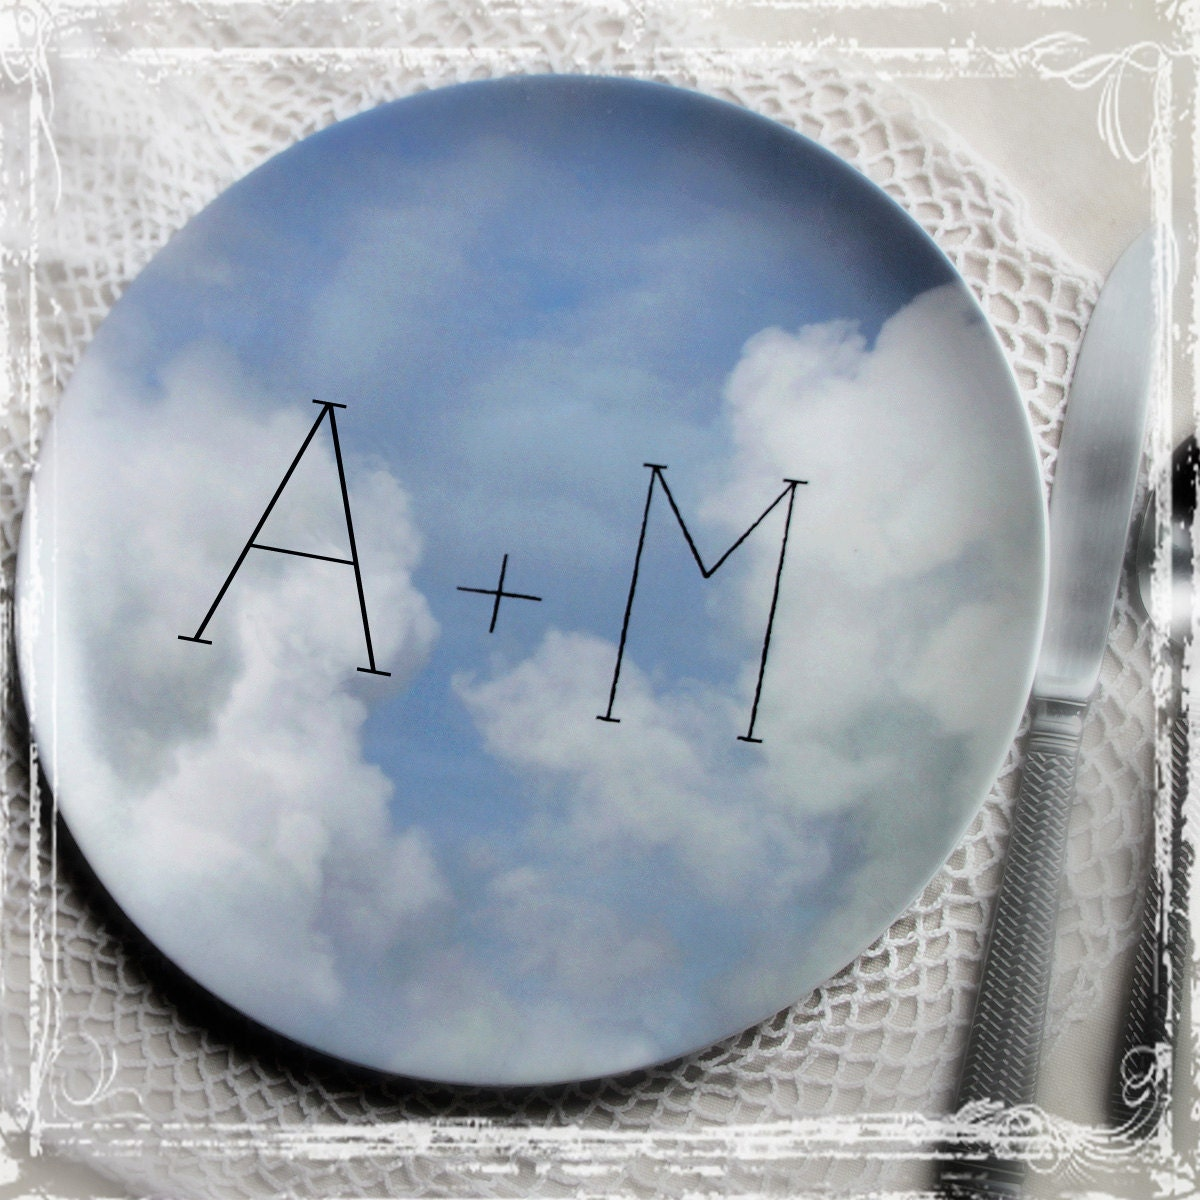 Match Made In Heaven Plate - Weddings Anniversary, First Married Christmas Gift, Personalized, Sky Clouds, Reception, Photo Prop Newlywed